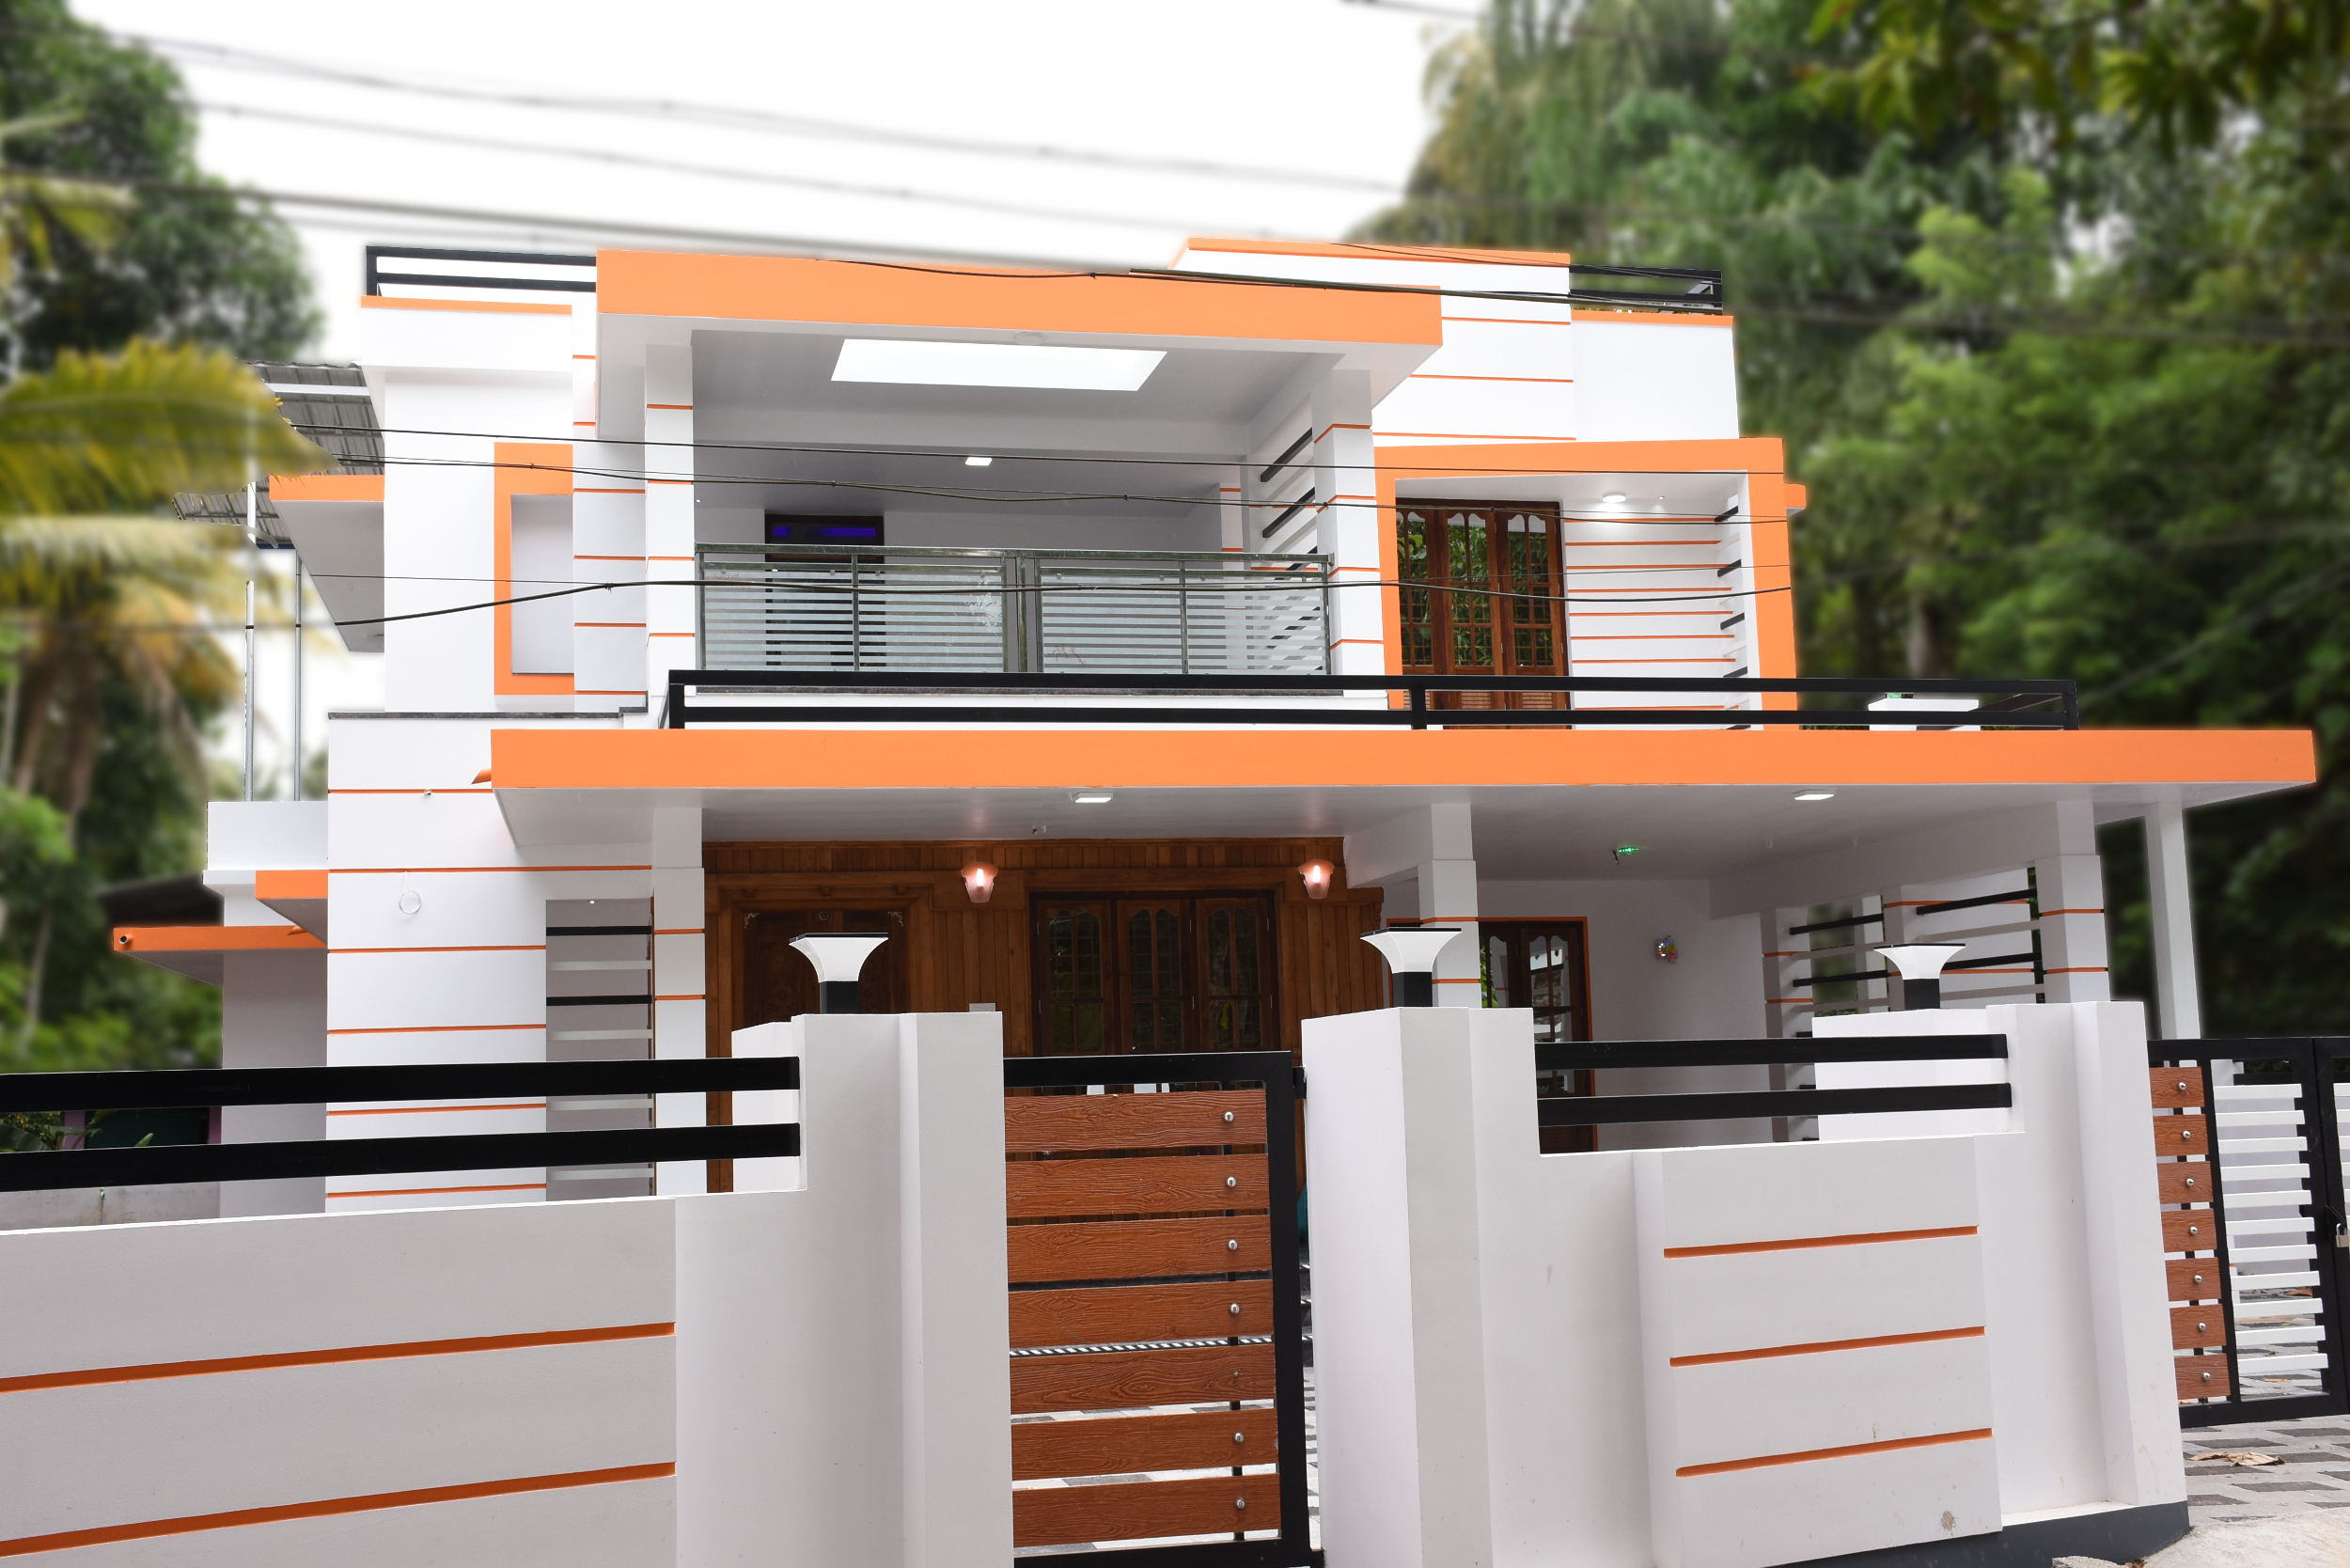 House Designs Beautiful House Models House Architectures House Models Villa Designs Villa House Designs Ireland Bungalow House Design Modern House Design